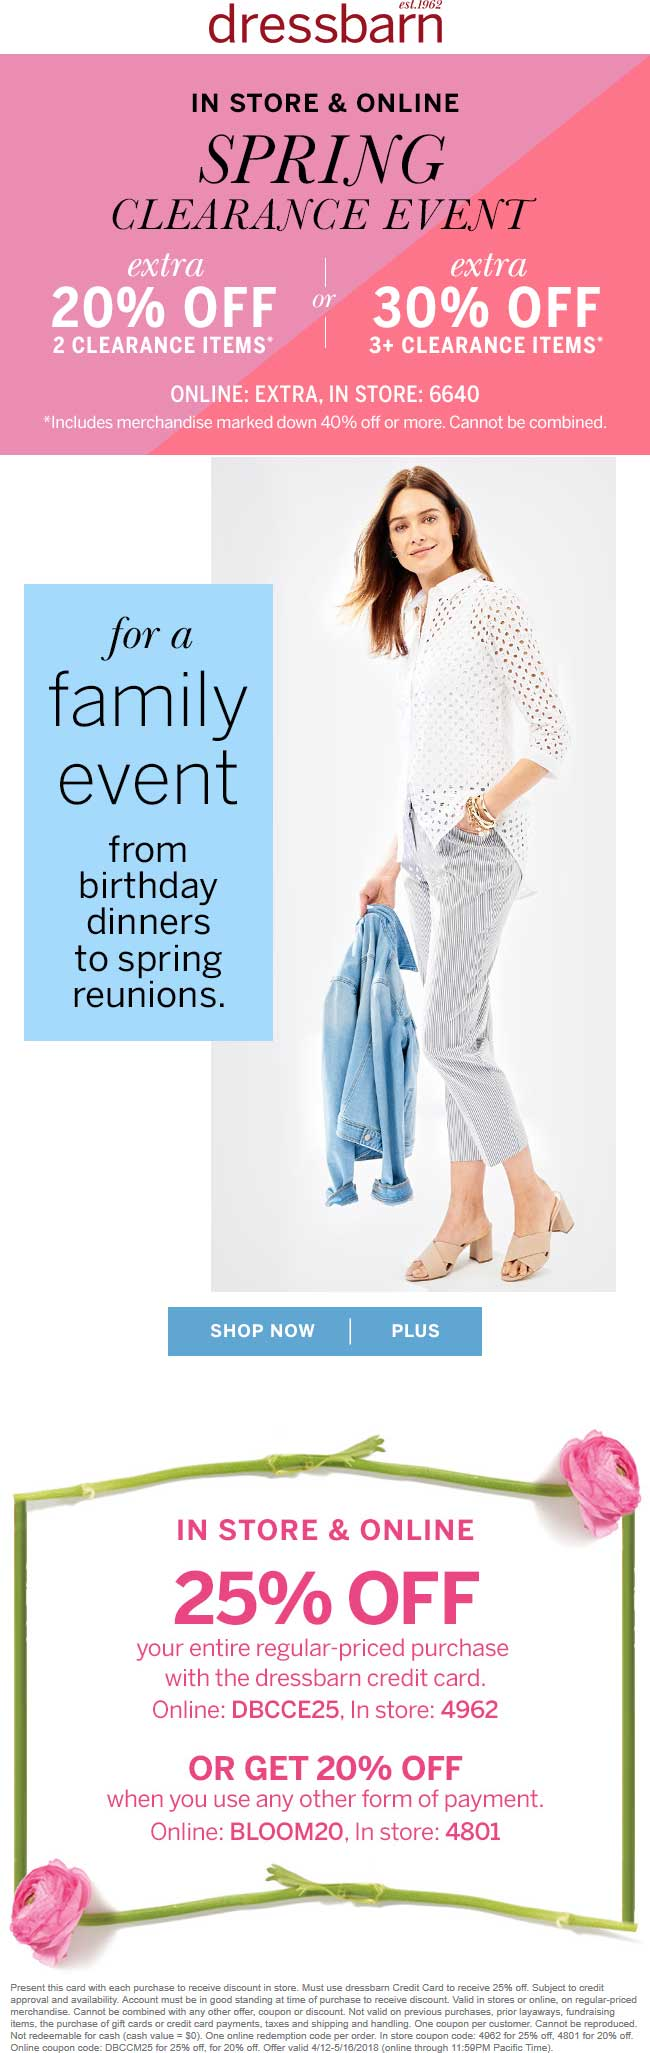 Dressbarn Coupon February 2019 20% off at Dressbarn, or online via promo code BLOOM20